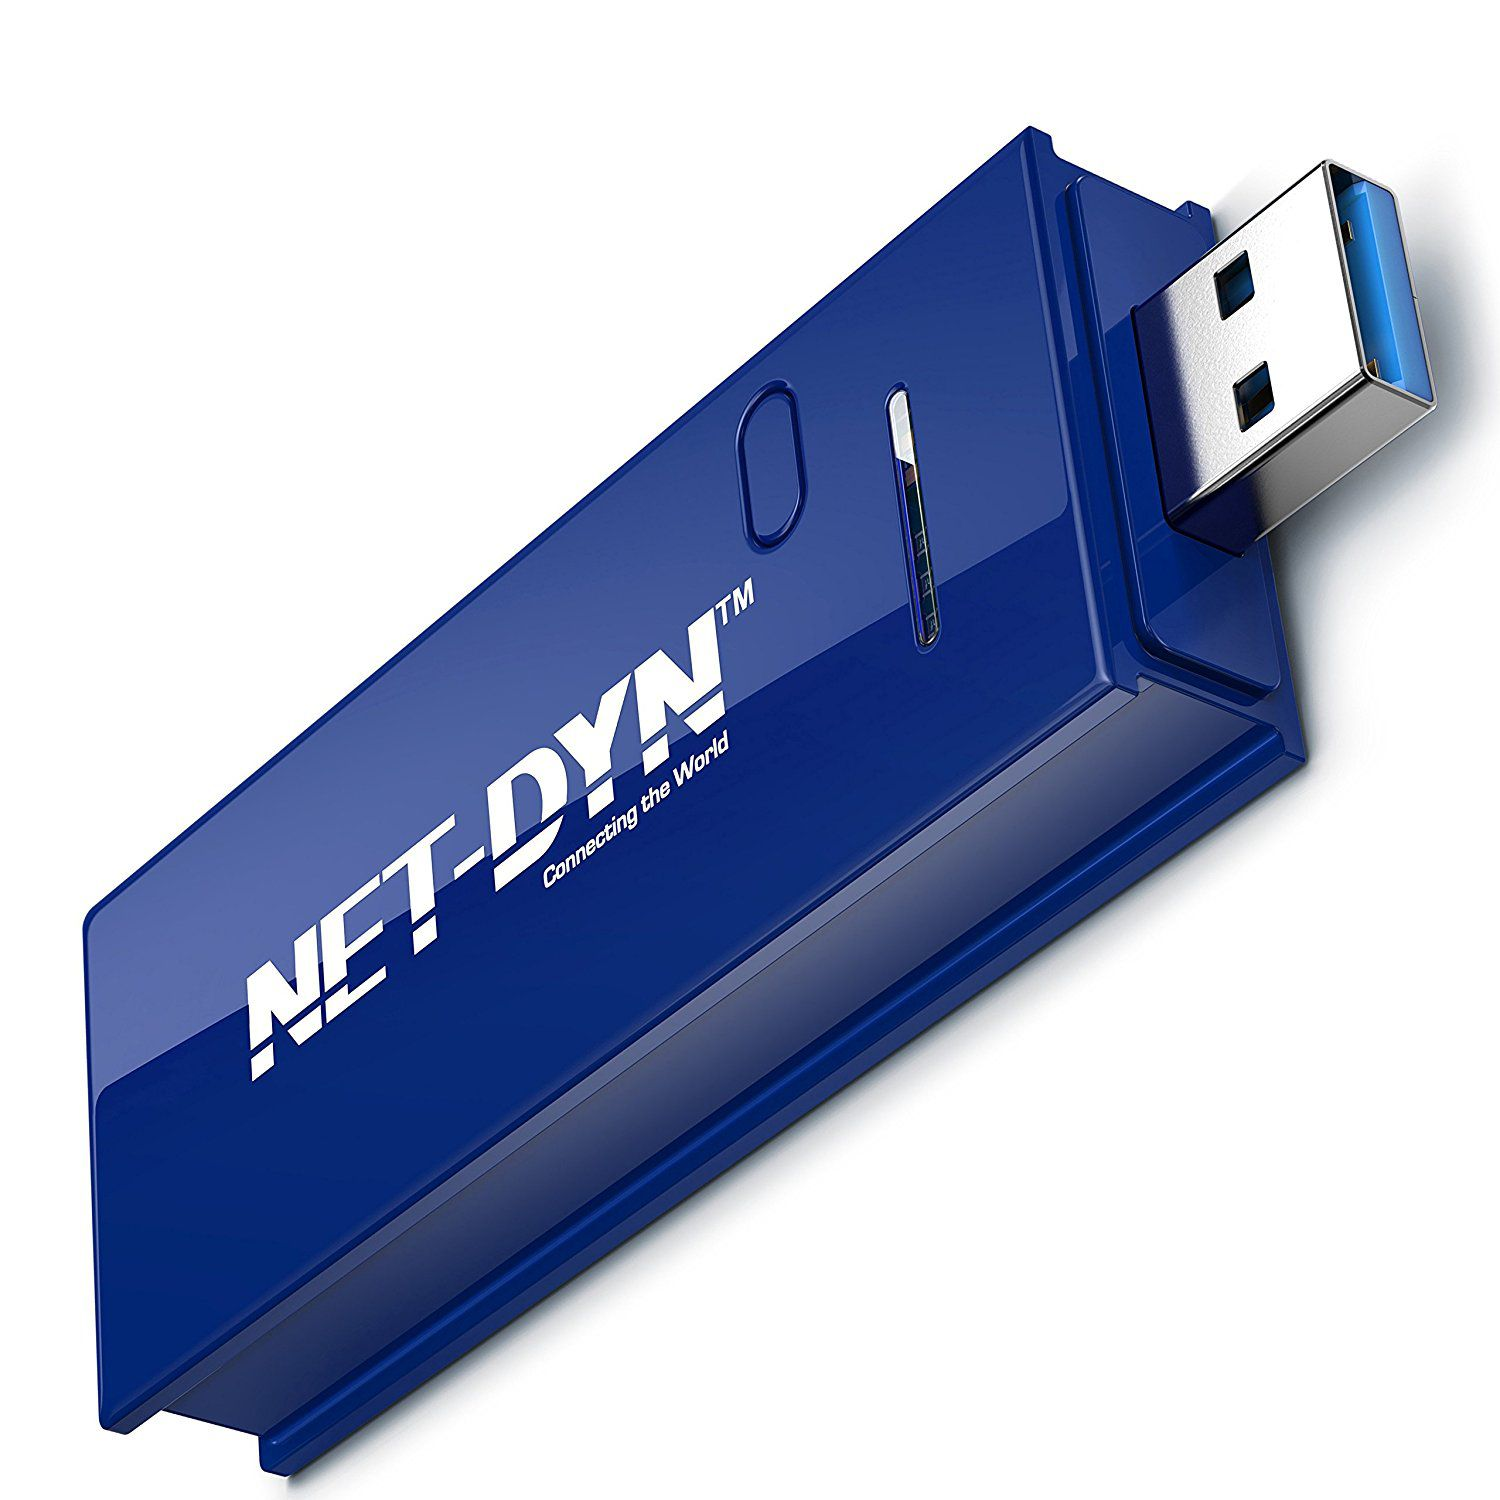 Net Dyn AC1200 USB Wireless WiFi Adapter